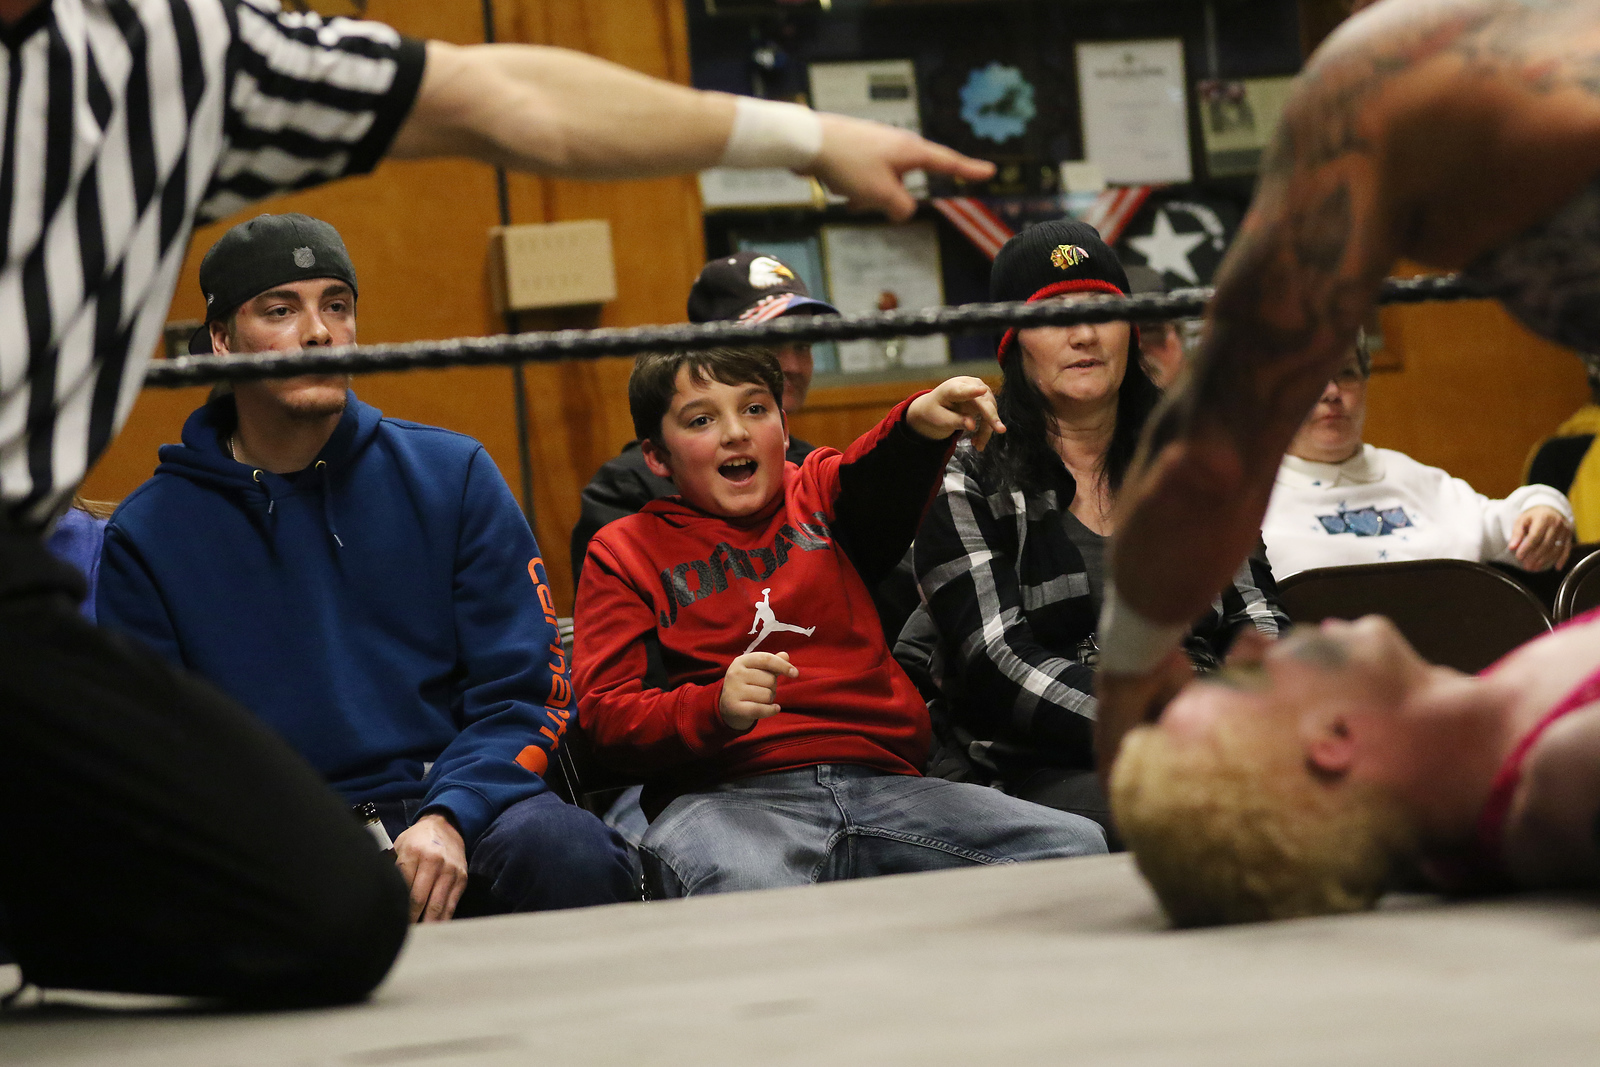 Candace H. Johnson-For Shaw Media Joseph Ricchio, 10, of Wauconda (center) points to Mason on the mat as he wrestles Hardcore Craig during POWW Entertainment's Live Pro Wrestling at the American Legion in Fox Lake.